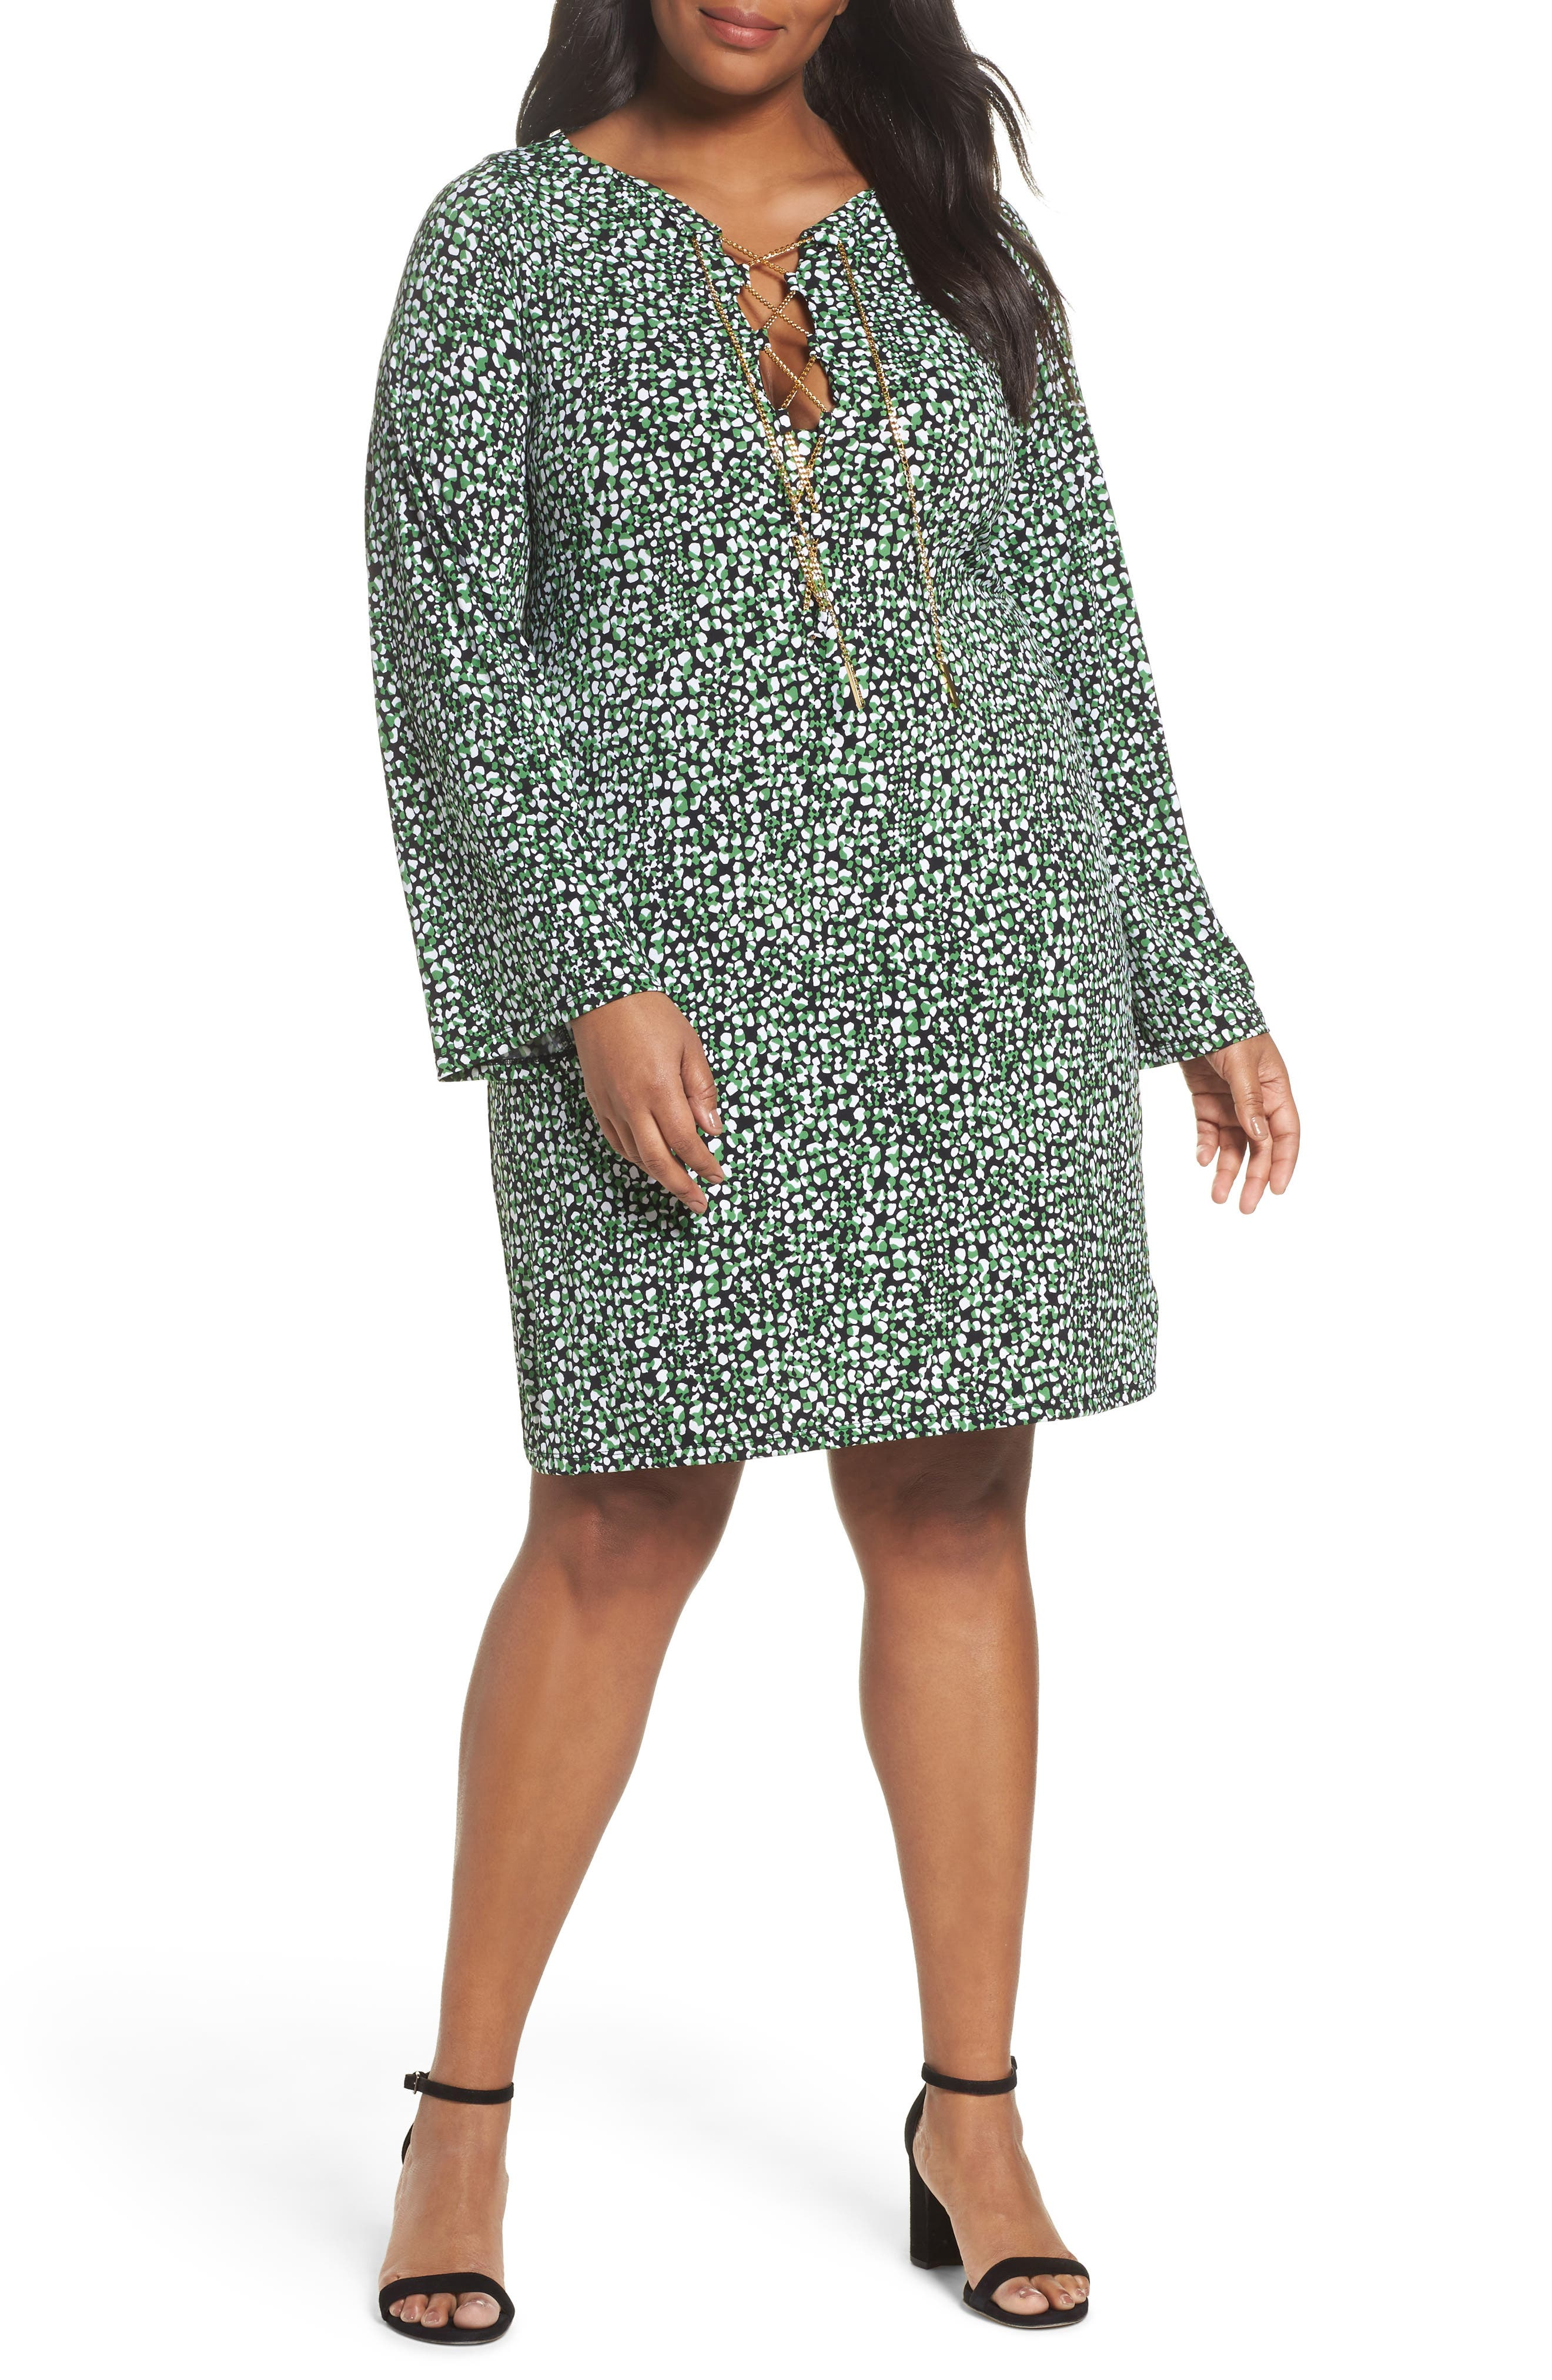 MICHAEL Michael Kors Chain Neck Print Shift Dress (Plus Size)